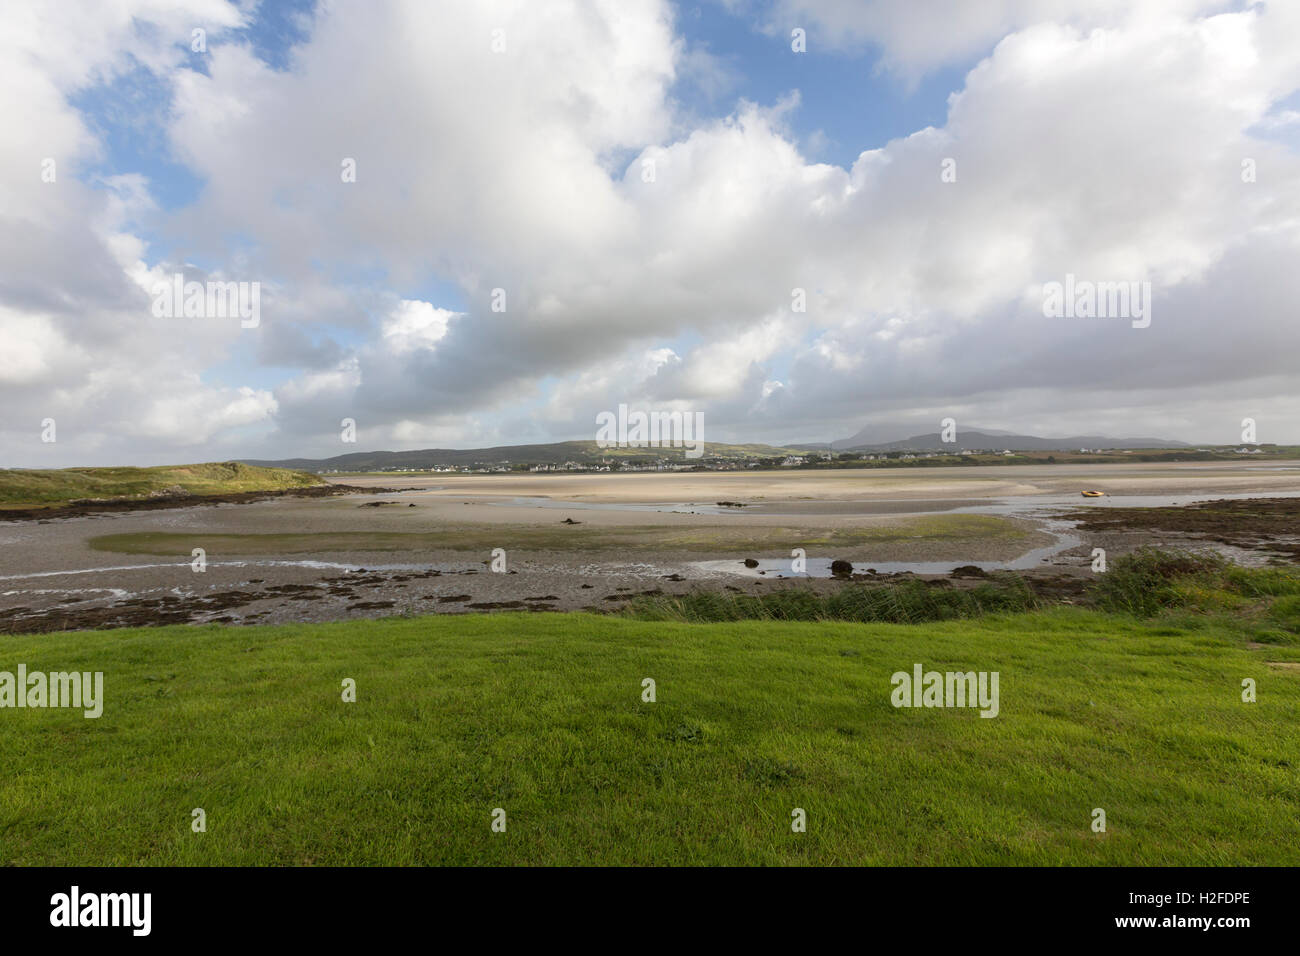 The Ross from Dunfanaghy, County Donegal, Ireland - Stock Image